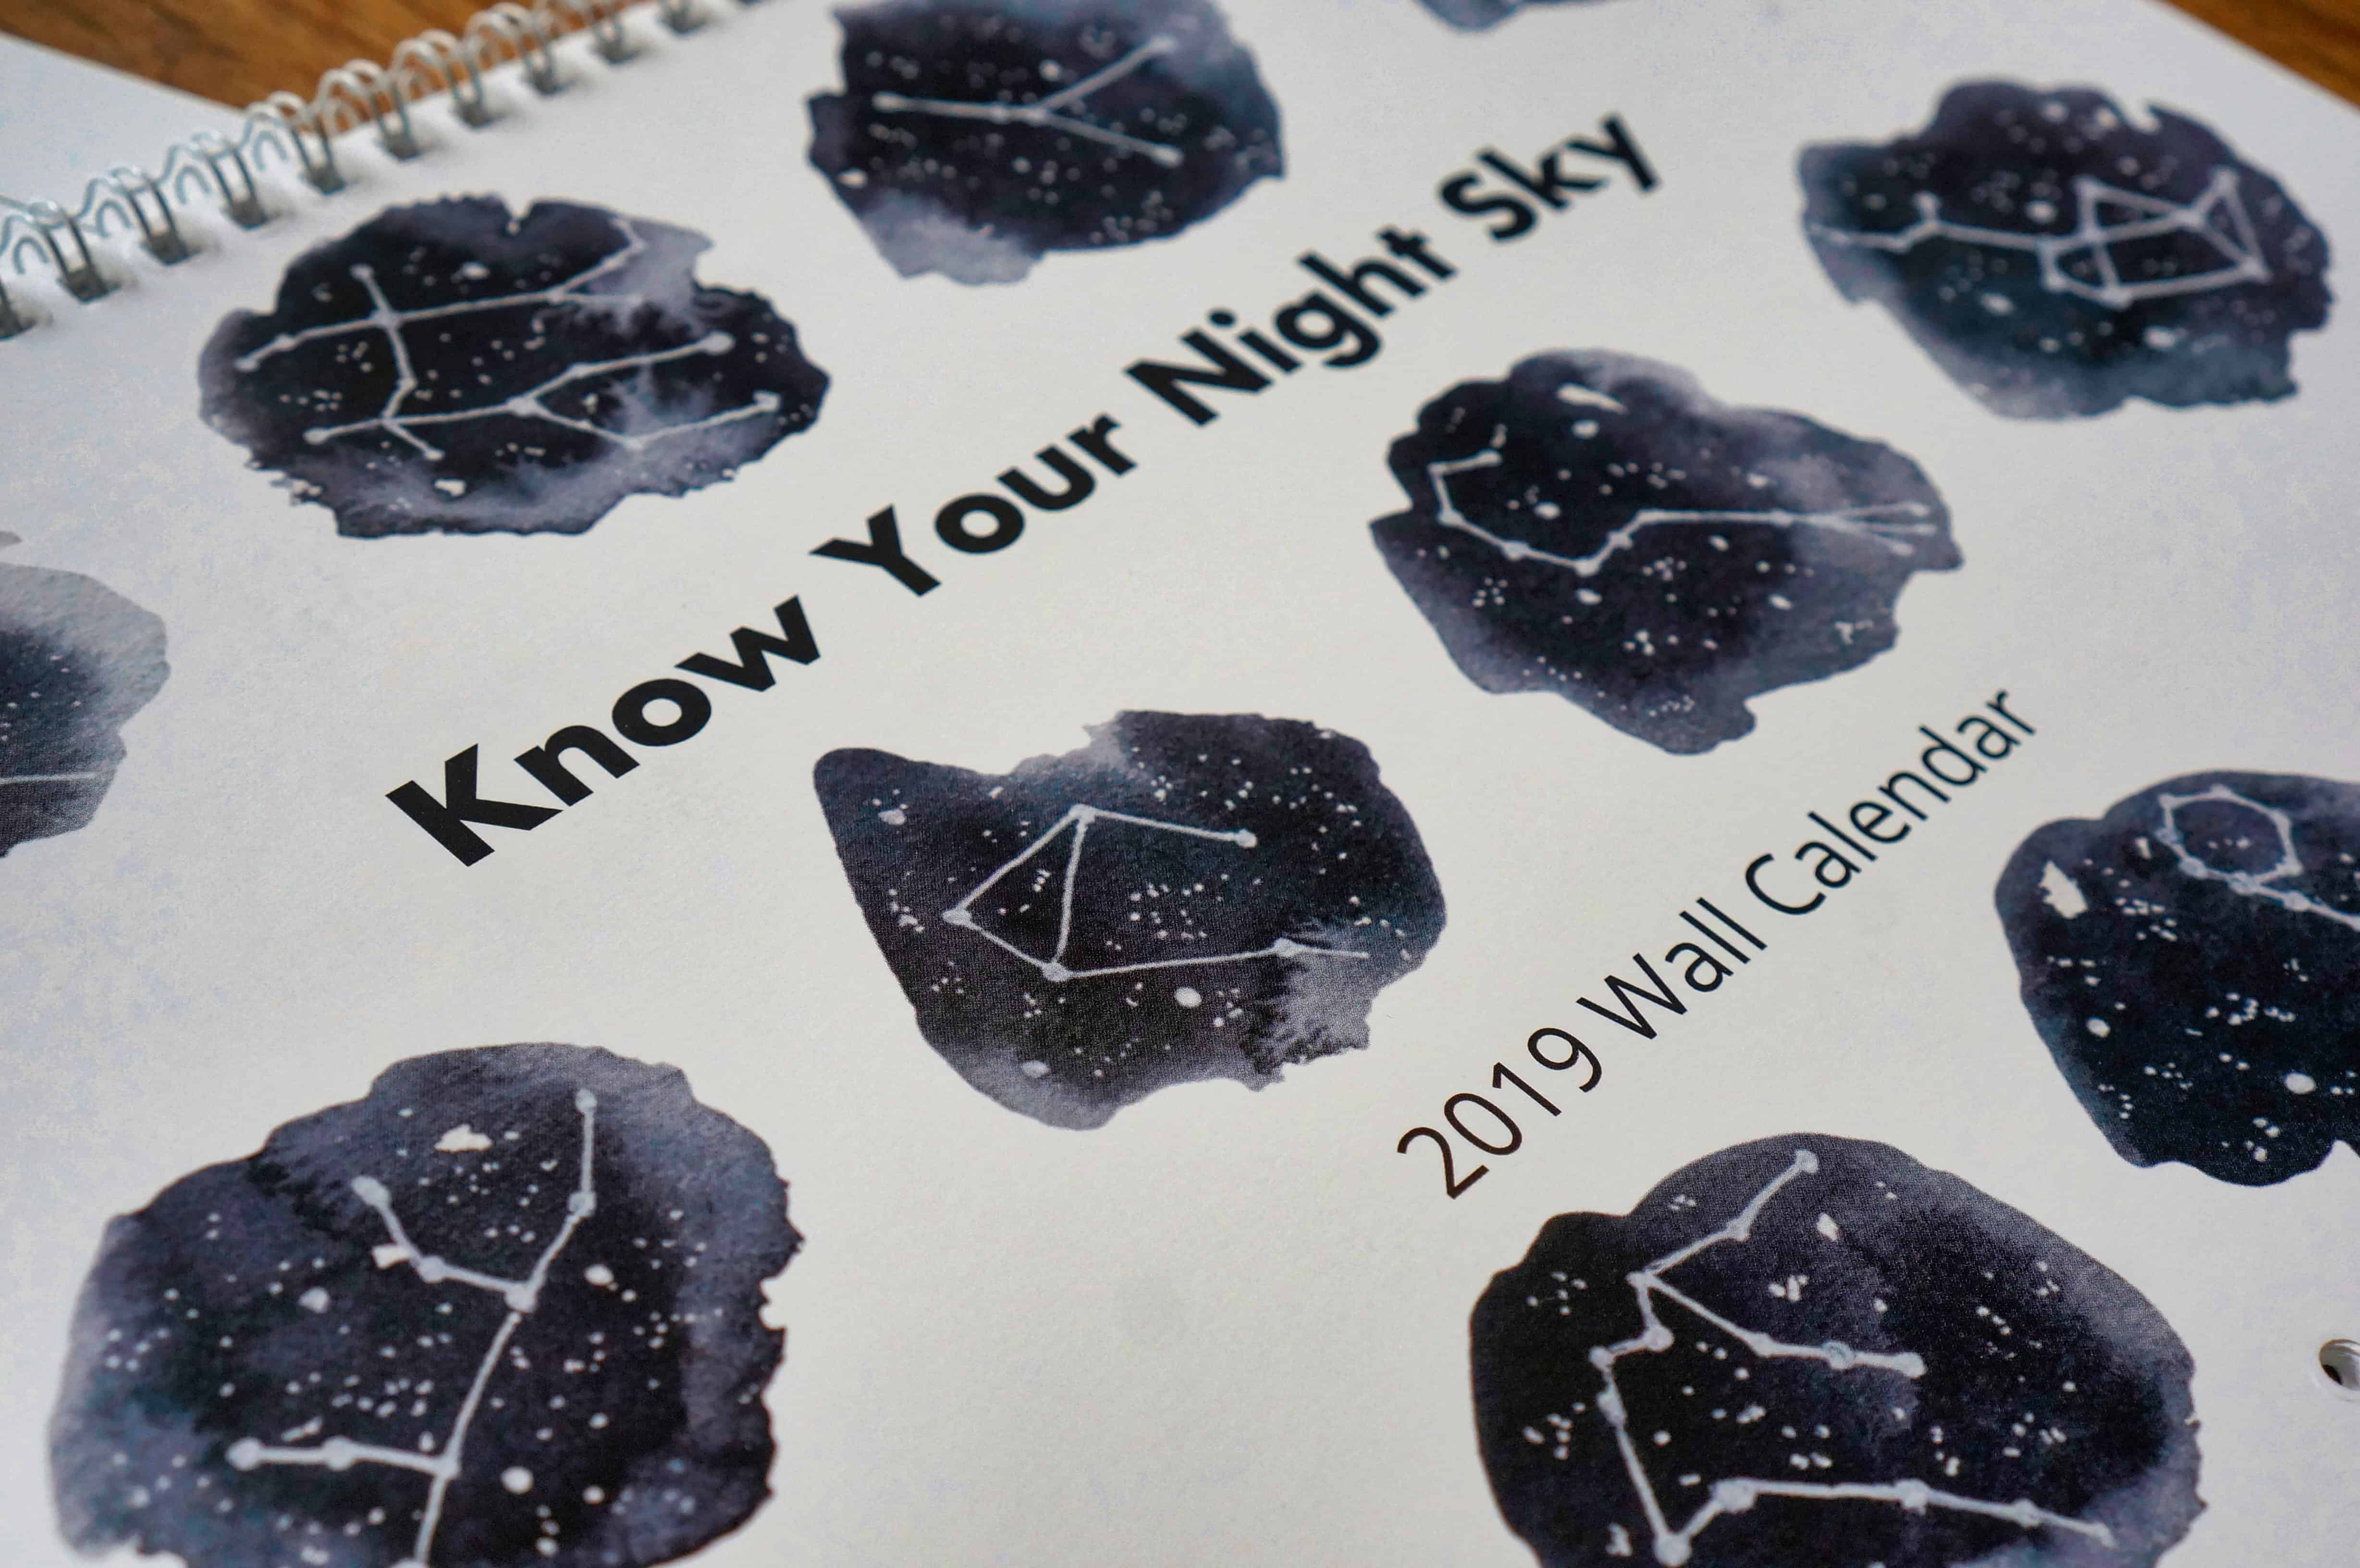 2019 Wall Calendar: Know Your Night Sky